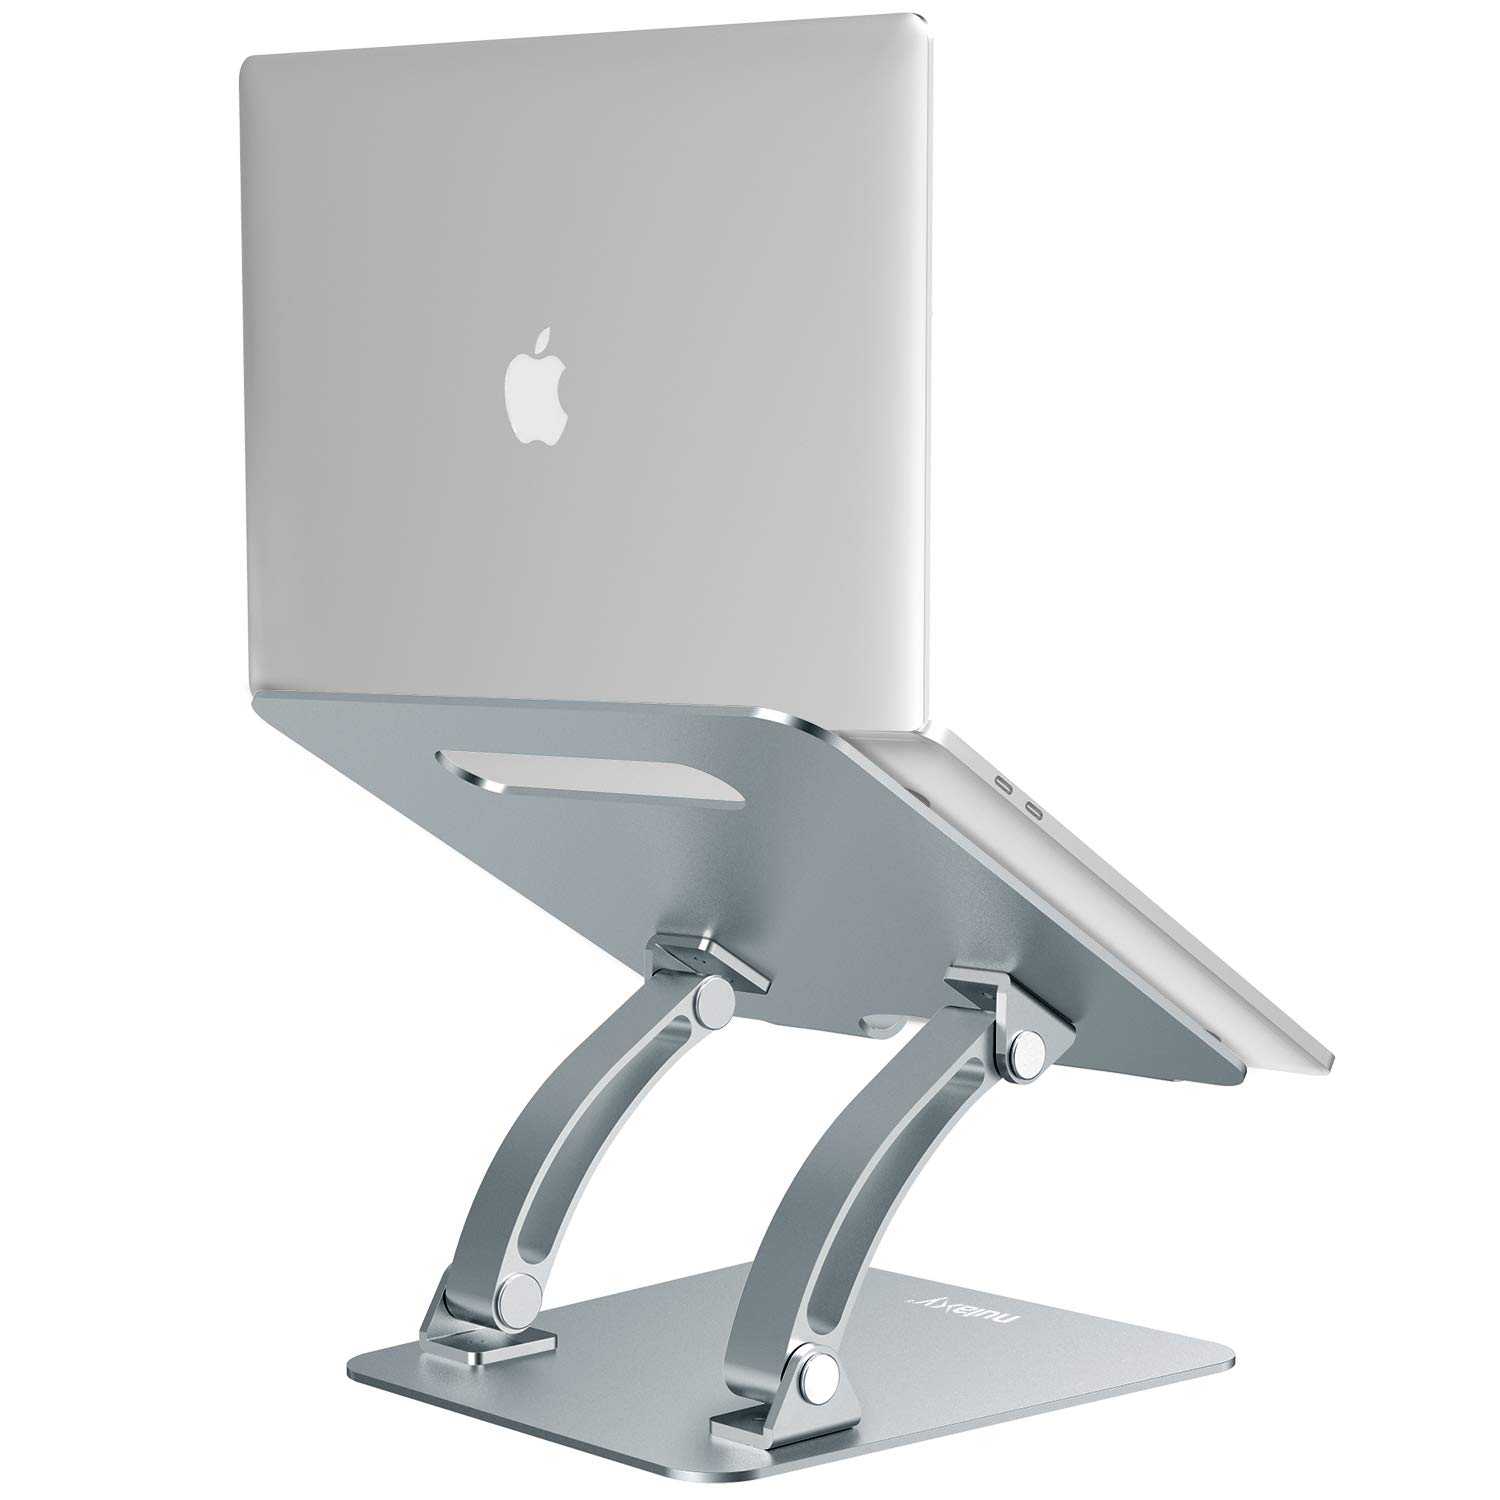 Nulaxy Laptop Stand, Ergonomic Adjustable Laptop Riser Computer Laptop Stand Compatible with MacBook, Air, Pro, Dell XPS, Samsung, Alienware All Laptops 10-17.3'', Supports Up to 44 Lbs - Space Grey by Nulaxy